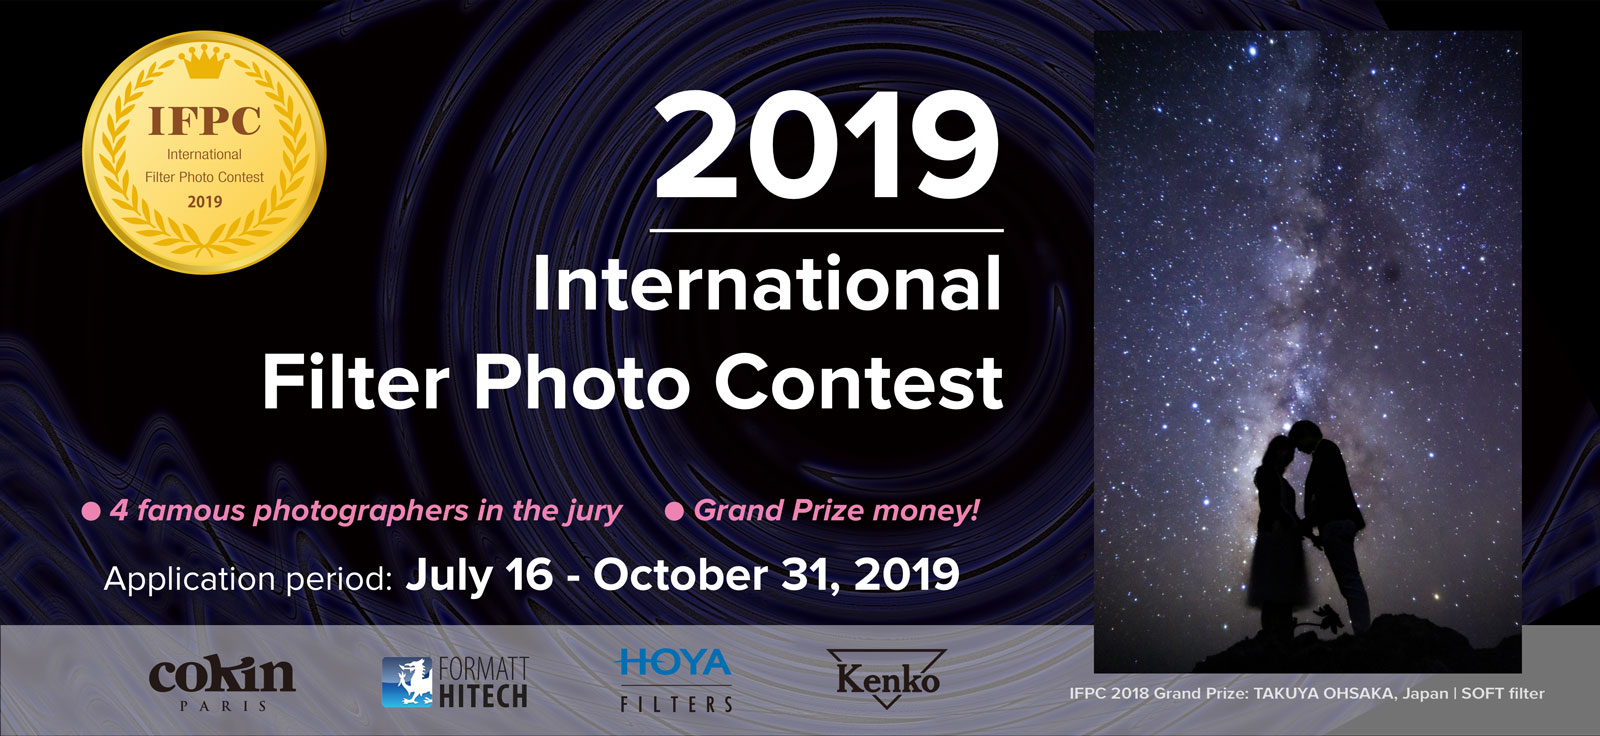 HOYA | News - International Filter Photo Contest 2019 is launched!